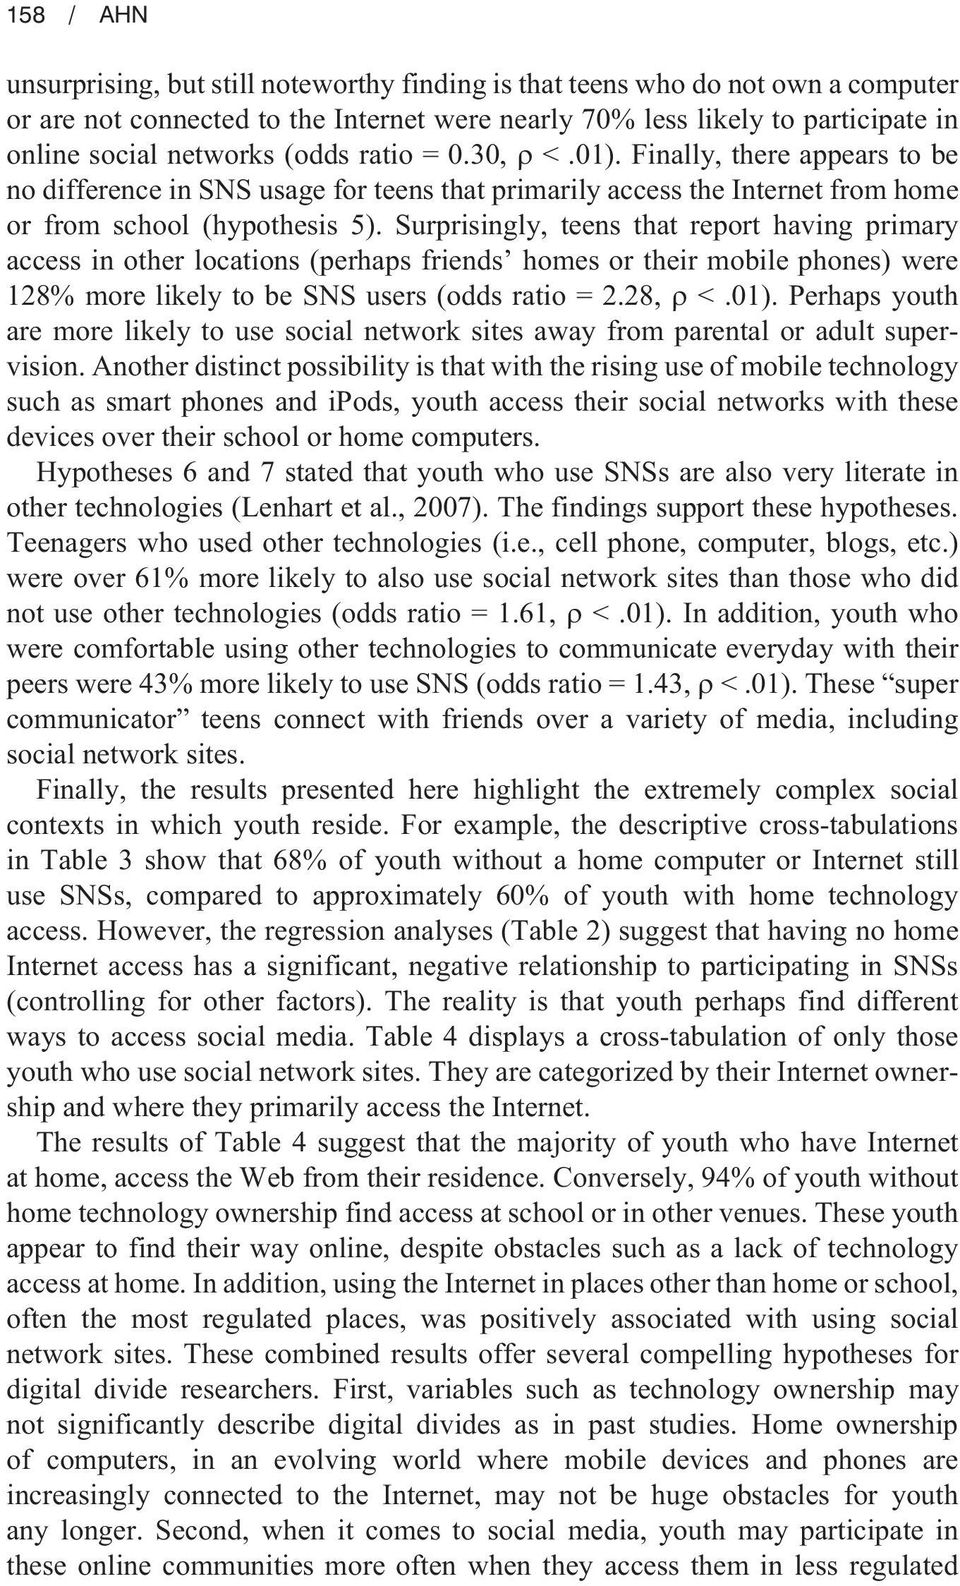 Surprisingly, teens that report having primary access in other locations (perhaps friends homes or their mobile phones) were 128% more likely to be SNS users (odds ratio = 2.28, <.01).